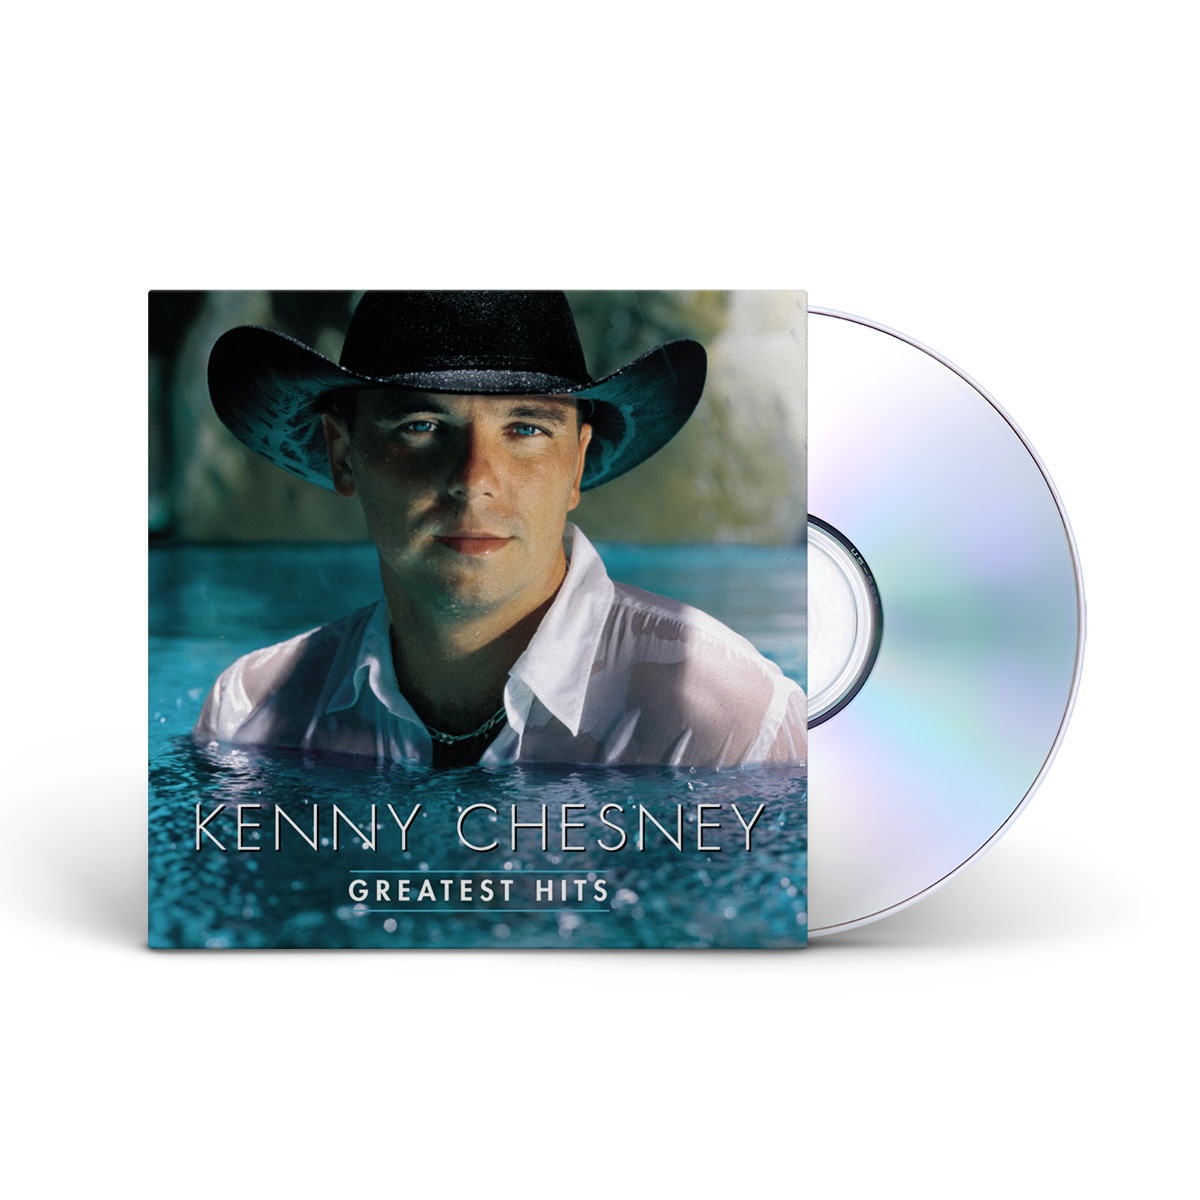 Kenny Chesney: Greatest Hits CD